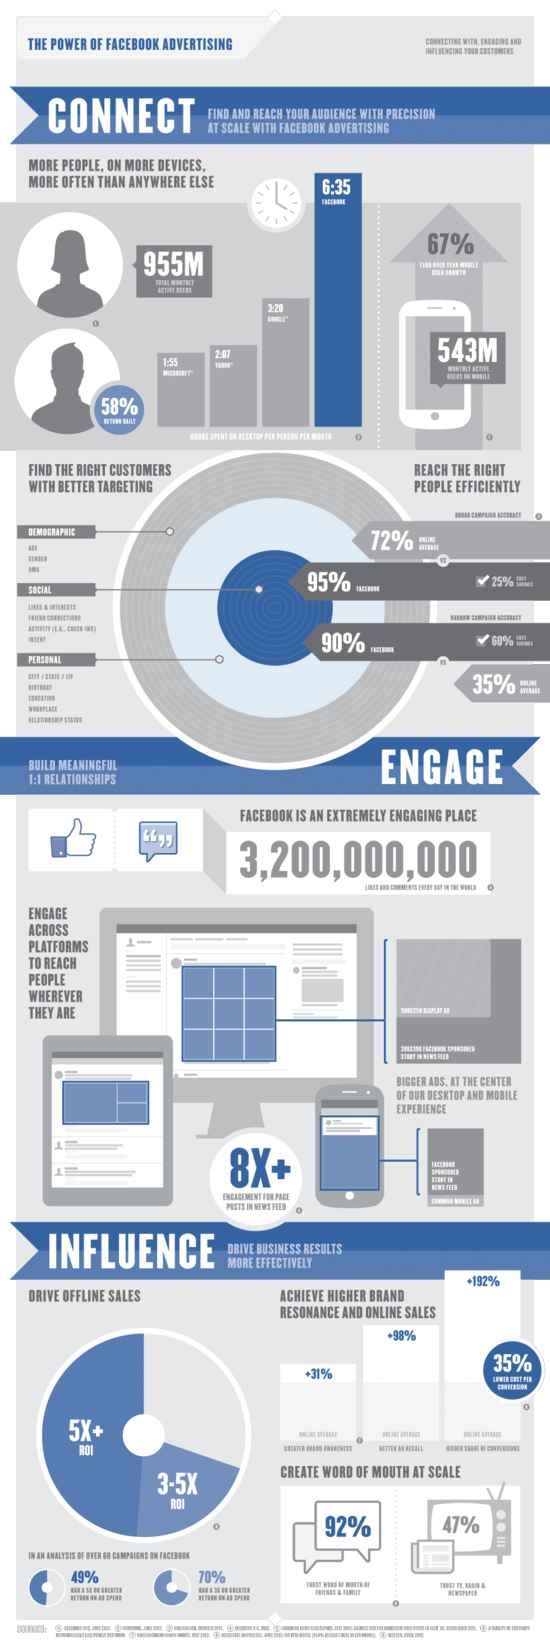 The Power of Facebook Advertising - Facebook - September 2012